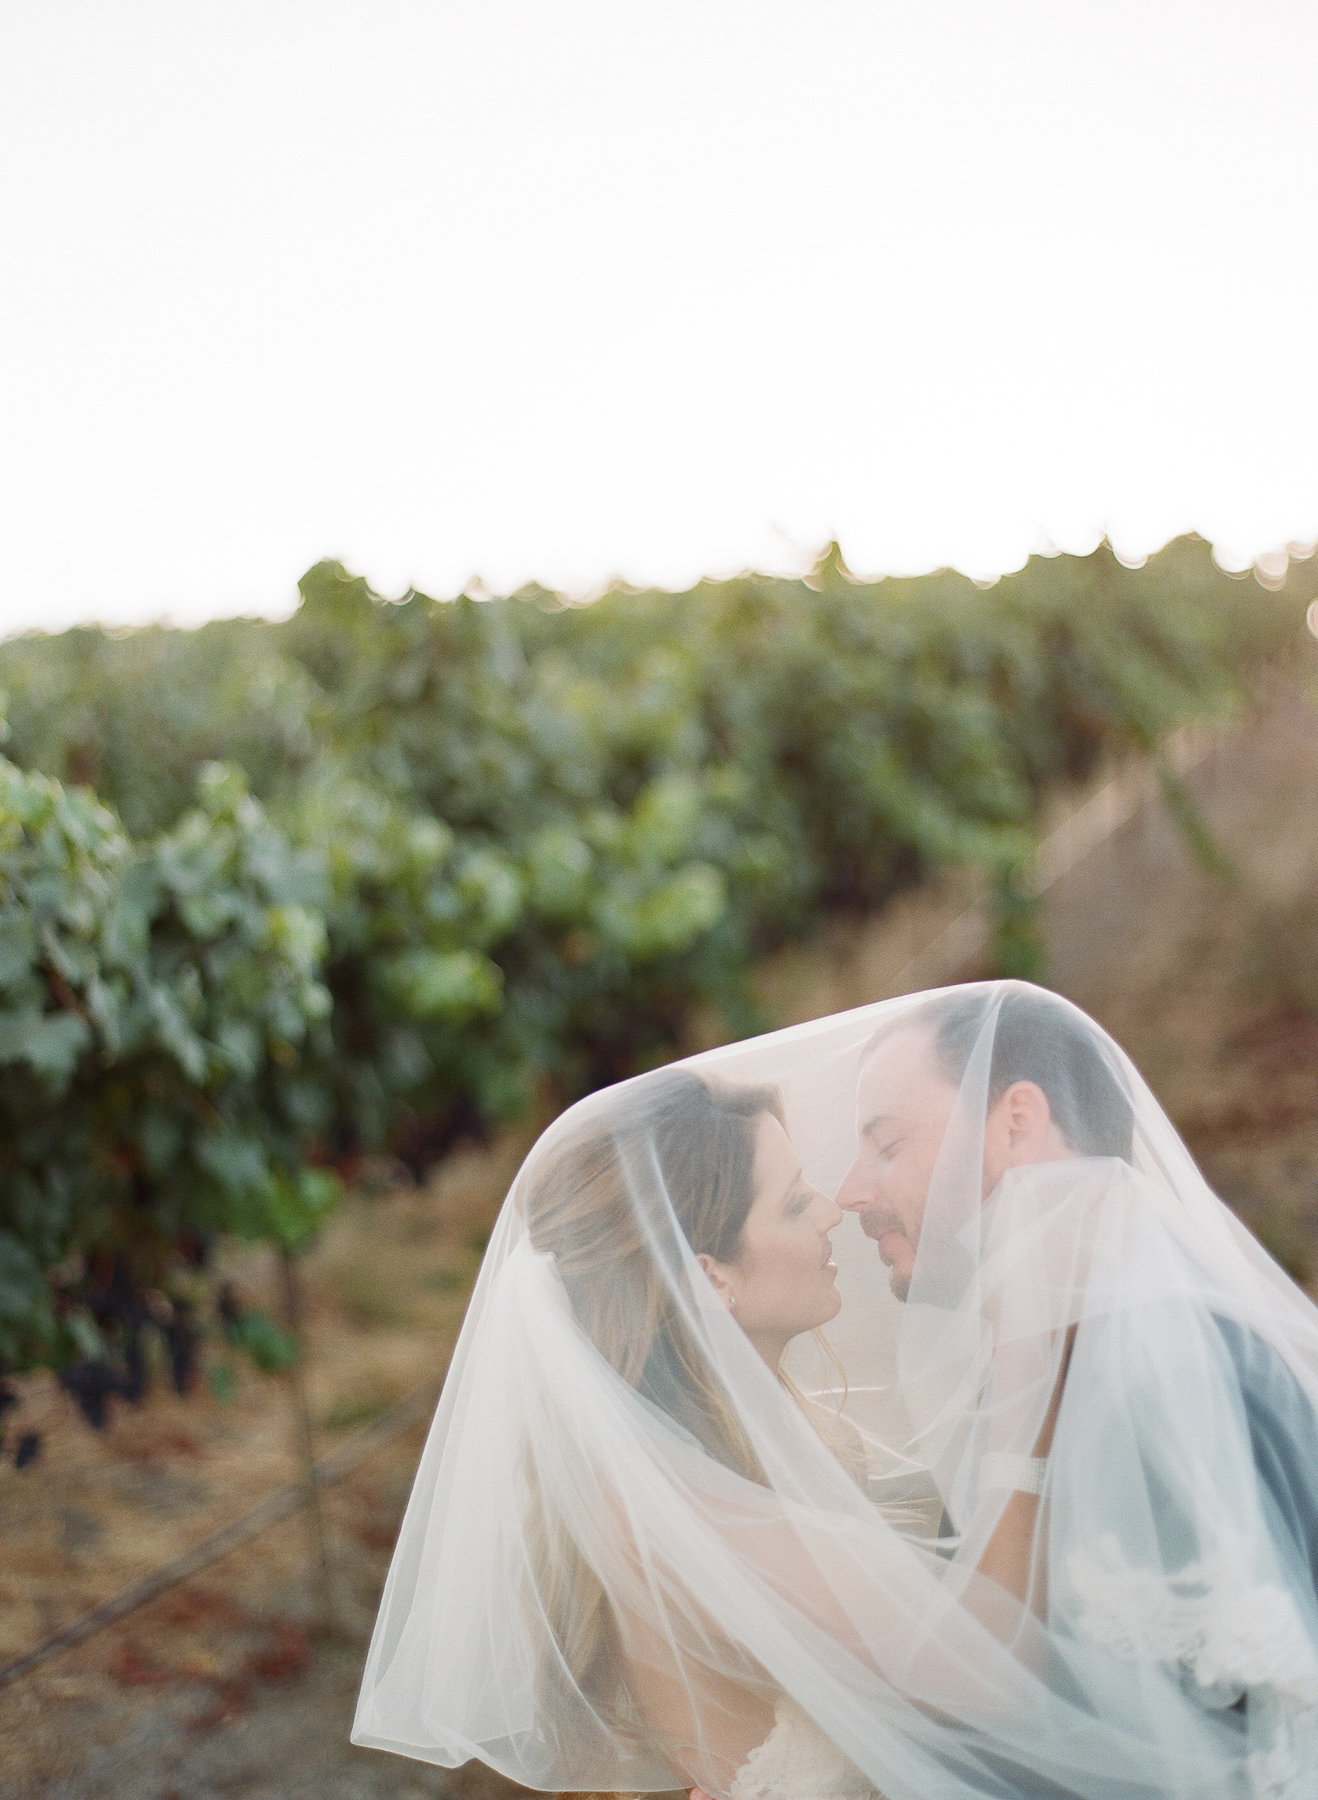 84-000038780001-california-wine-country-wedding-michaela-joy-photography